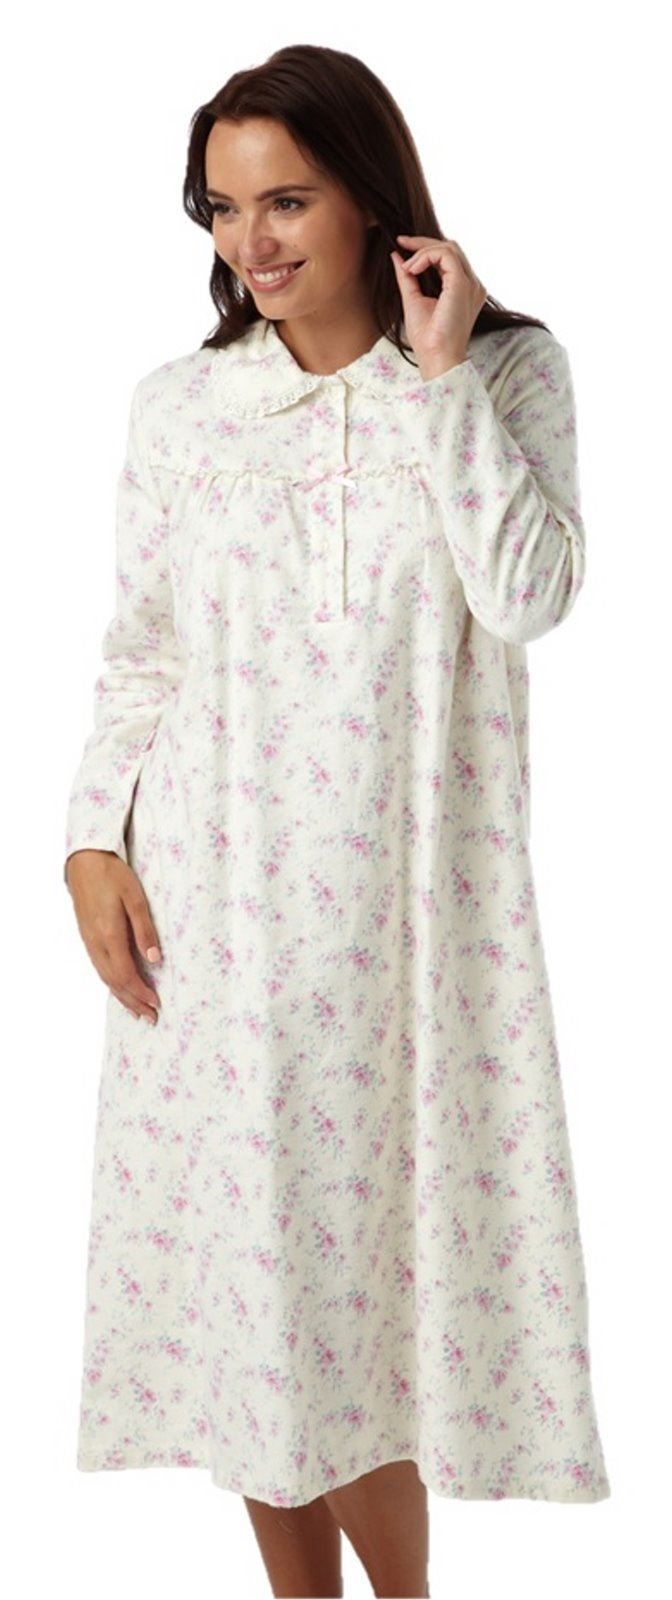 Our elegant and classic ladies long sleeve nightdress is a very soft pretty % cotton lawn, full length nightdress. With delicate embroidery around the cuff and neckline. Price £